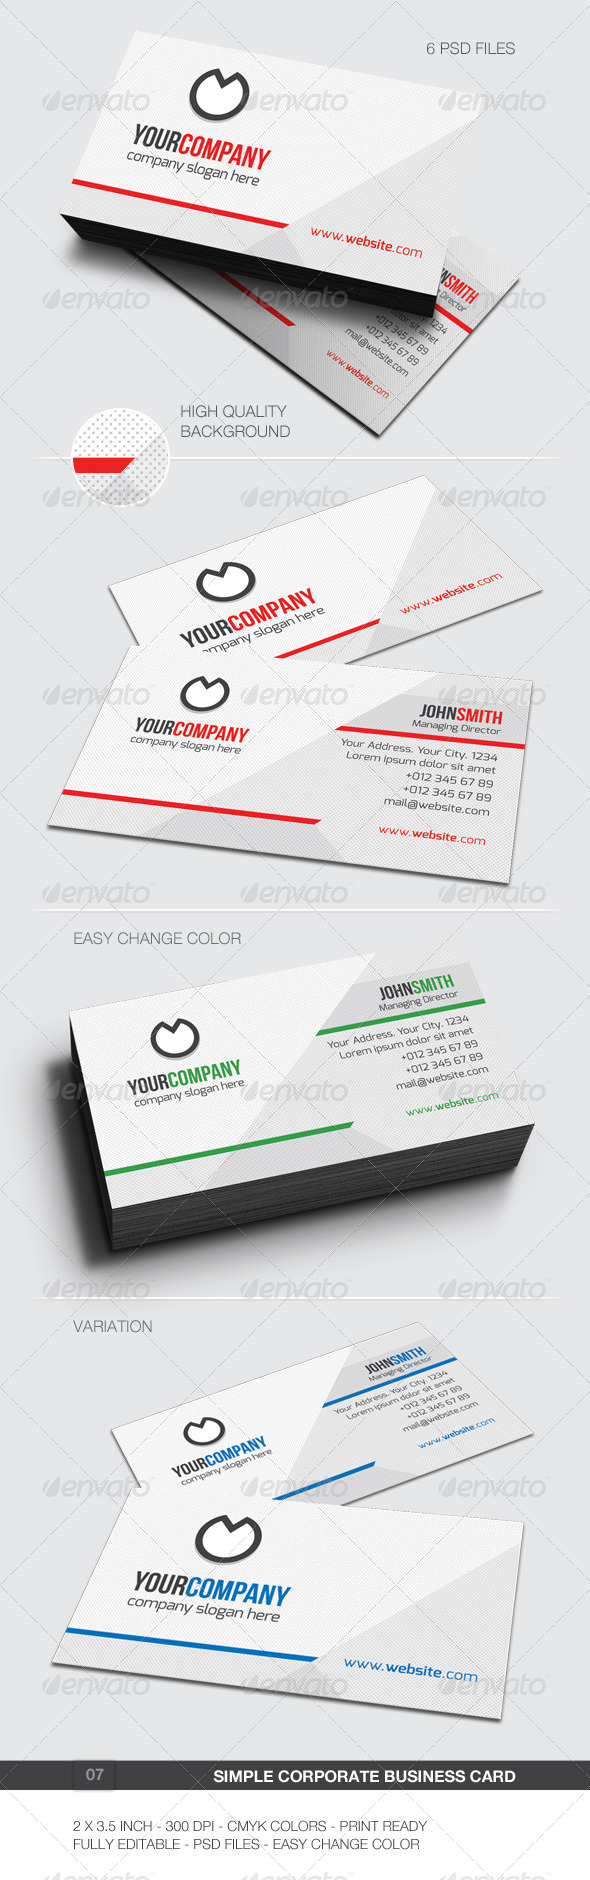 GraphicRiver Simple Corporate Business Card 07 6087566